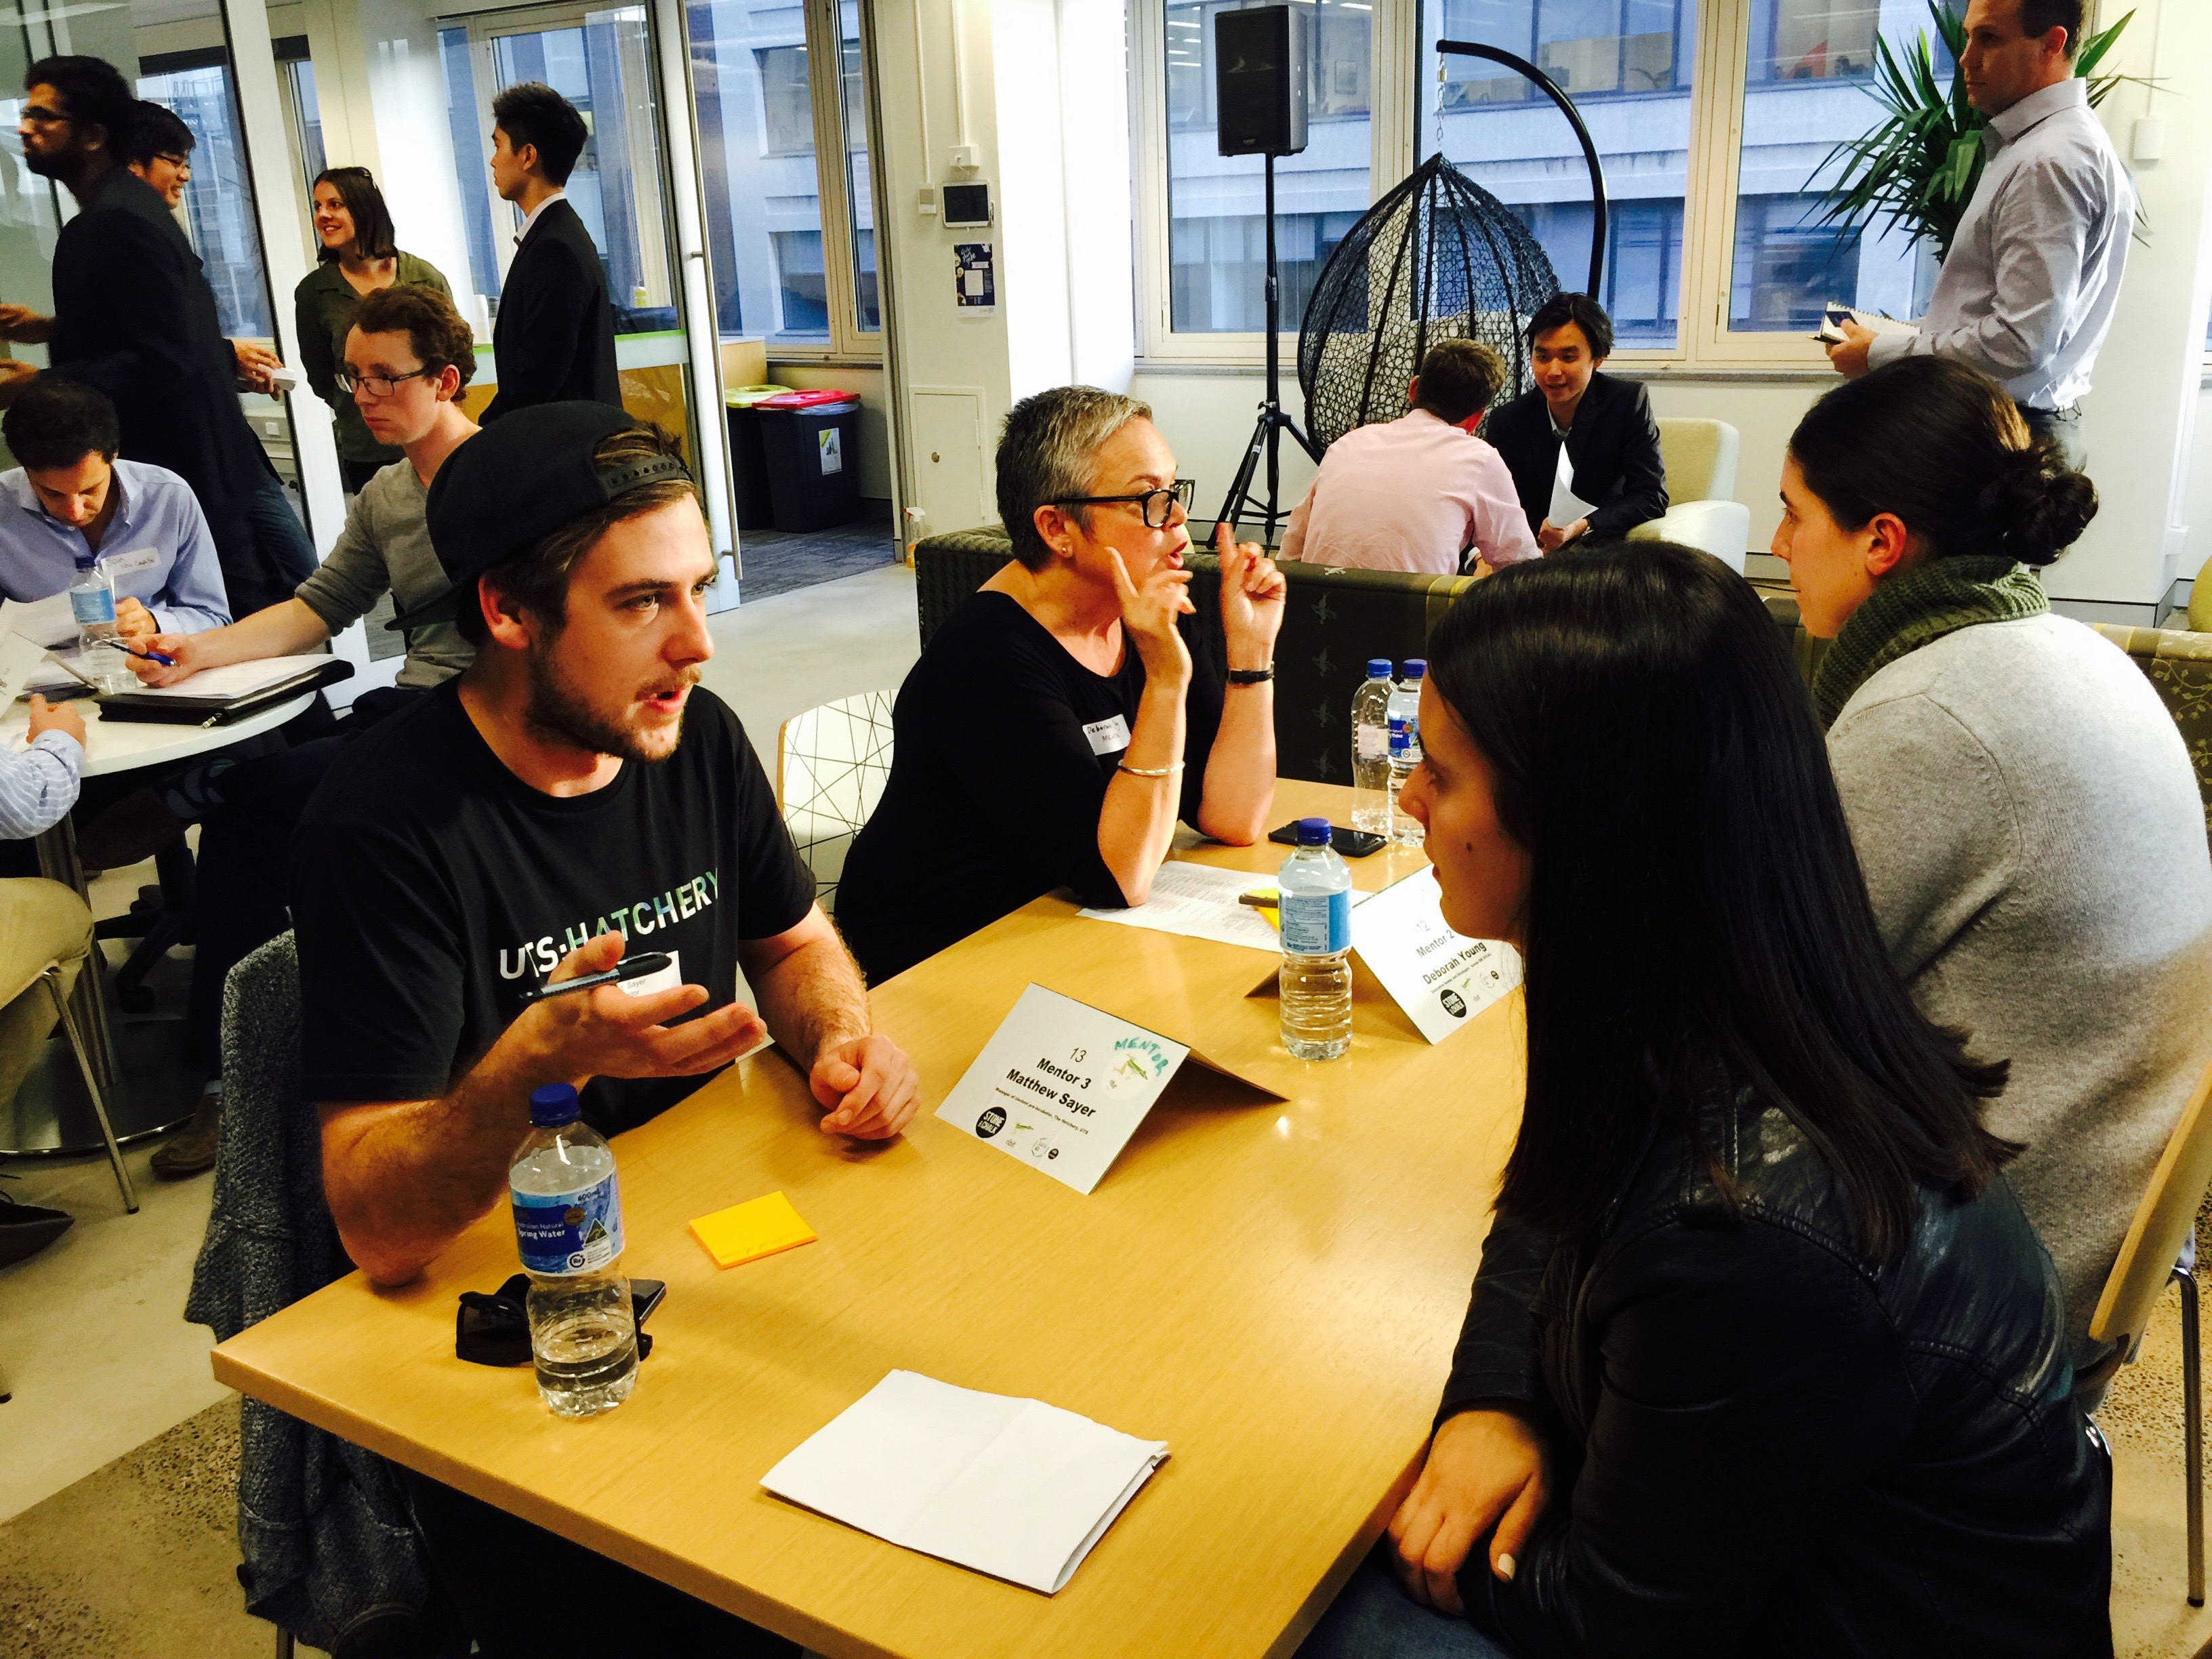 Speed dating networking events